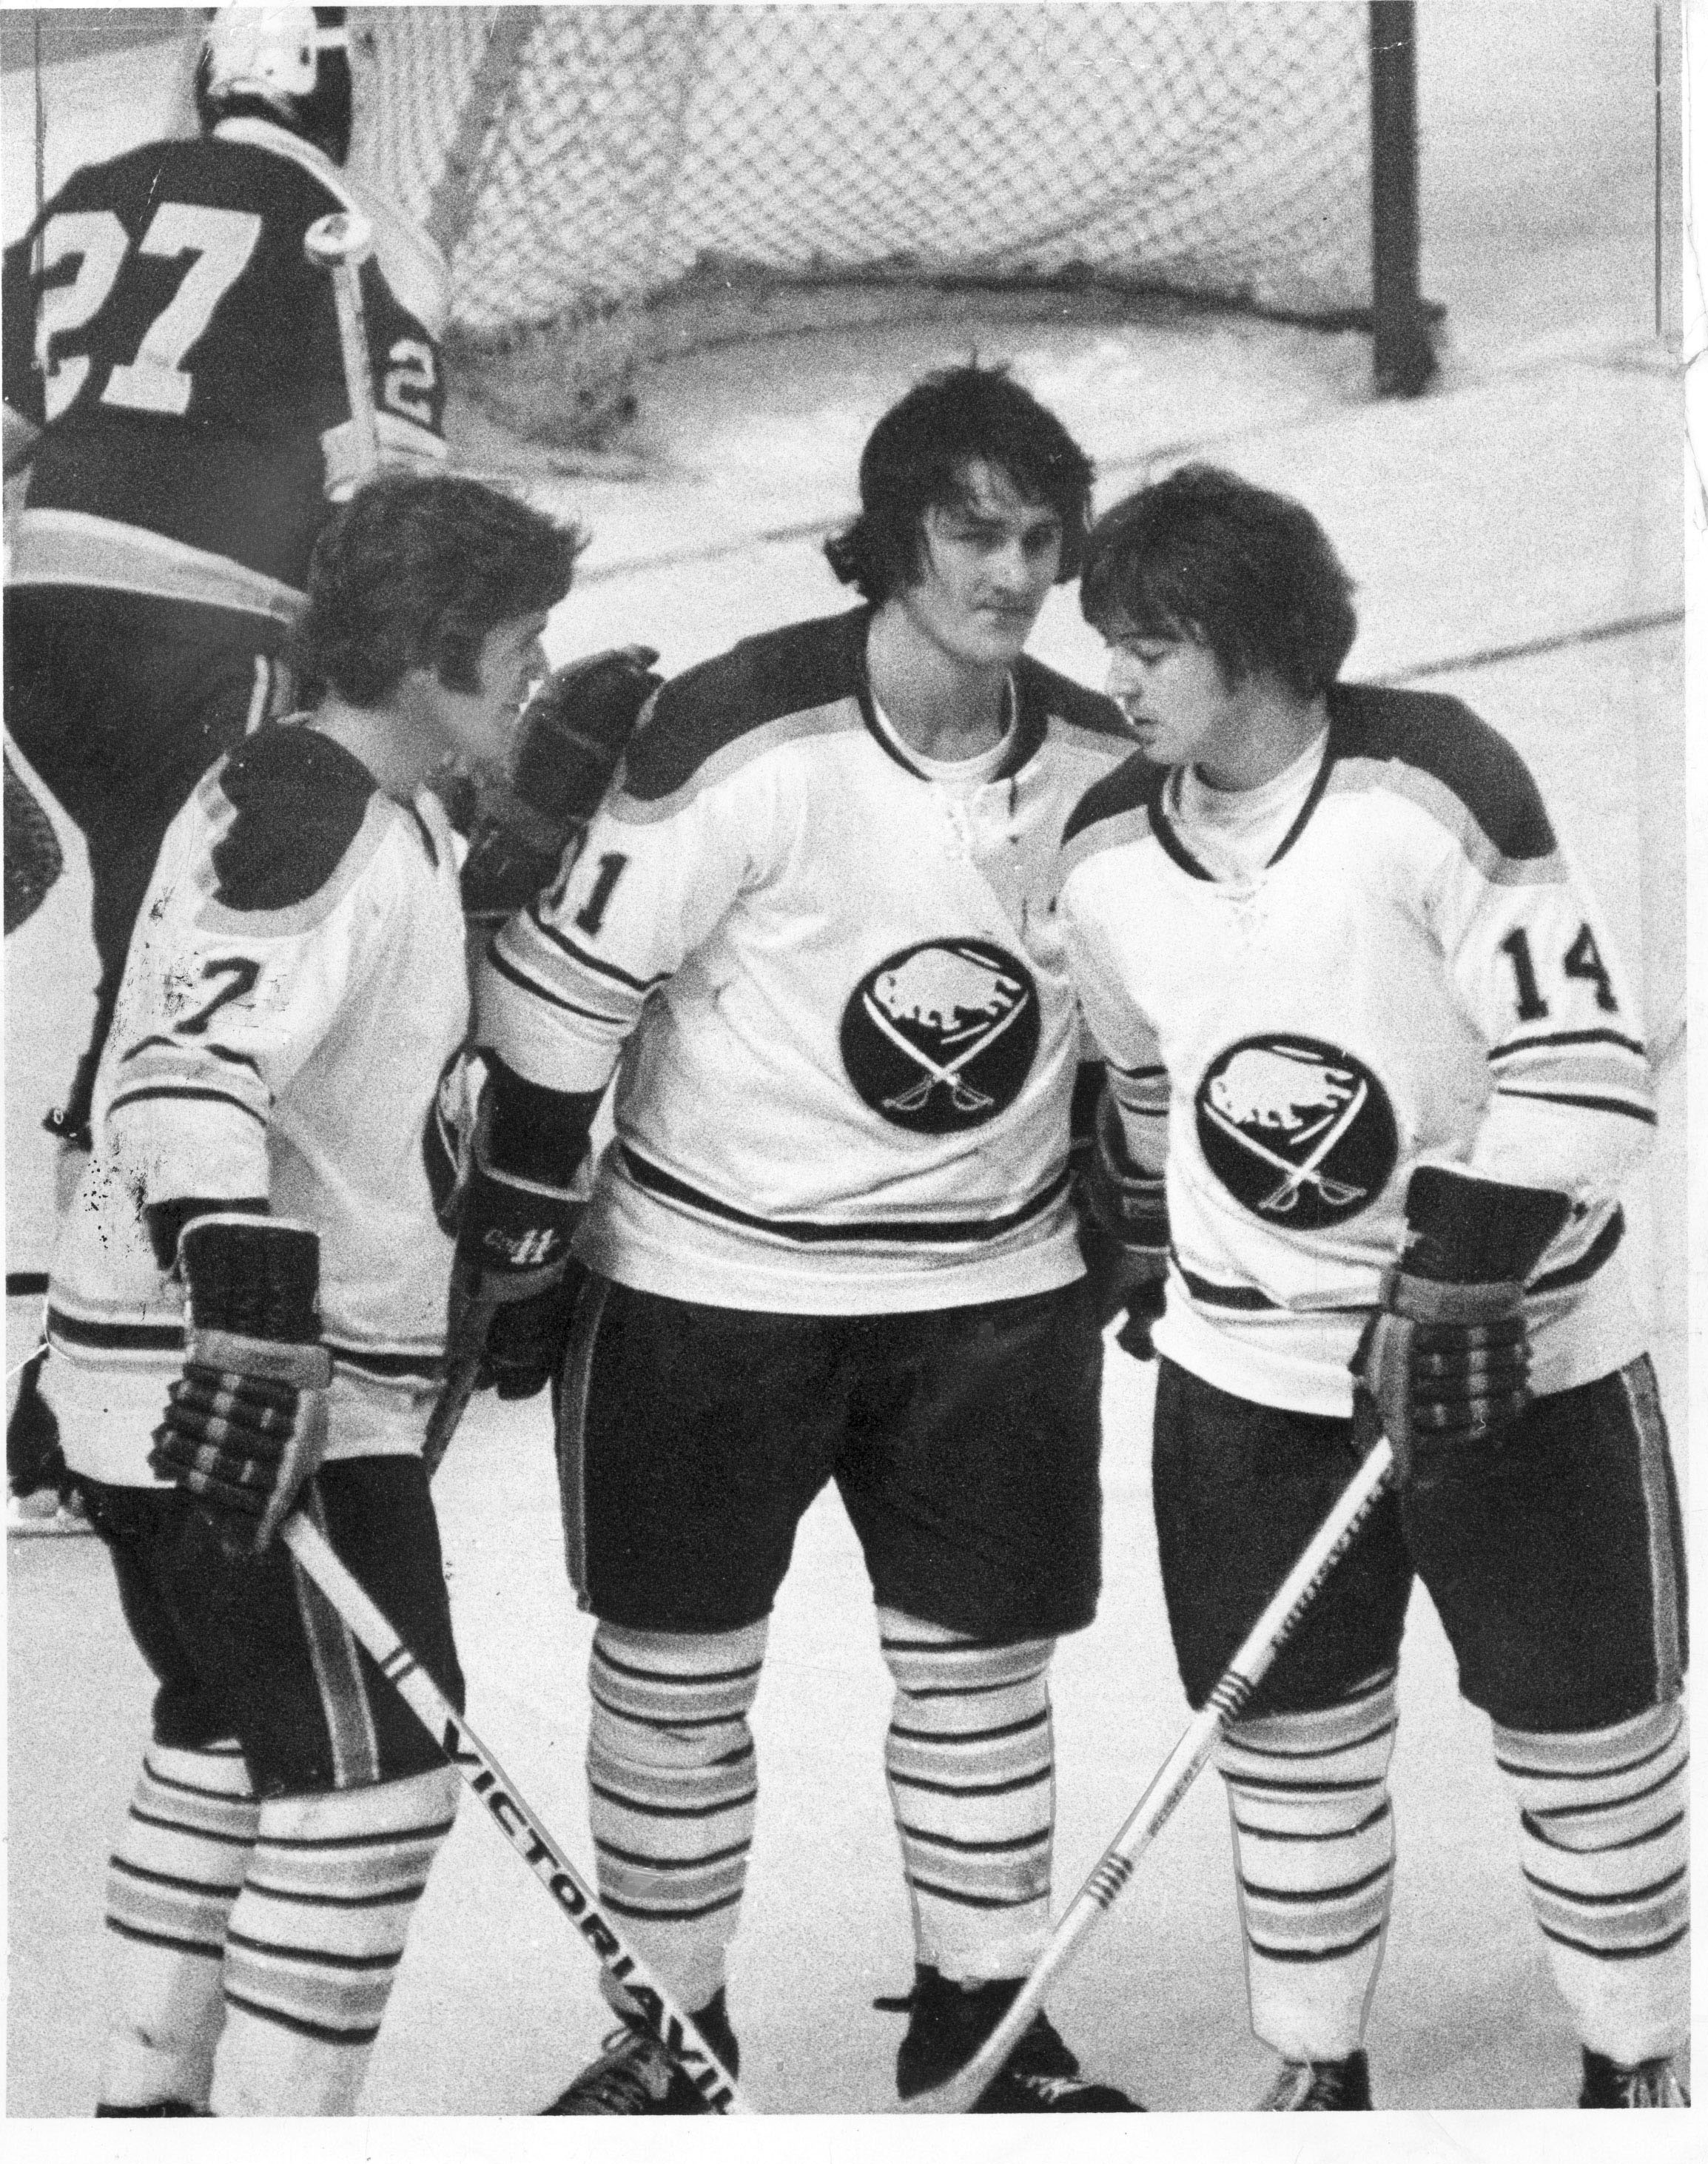 Rick Martin, Gilbert Perreault and Rene Robert, the Sabres' French Connection, from Jan. 20, 1974. (News file photo).